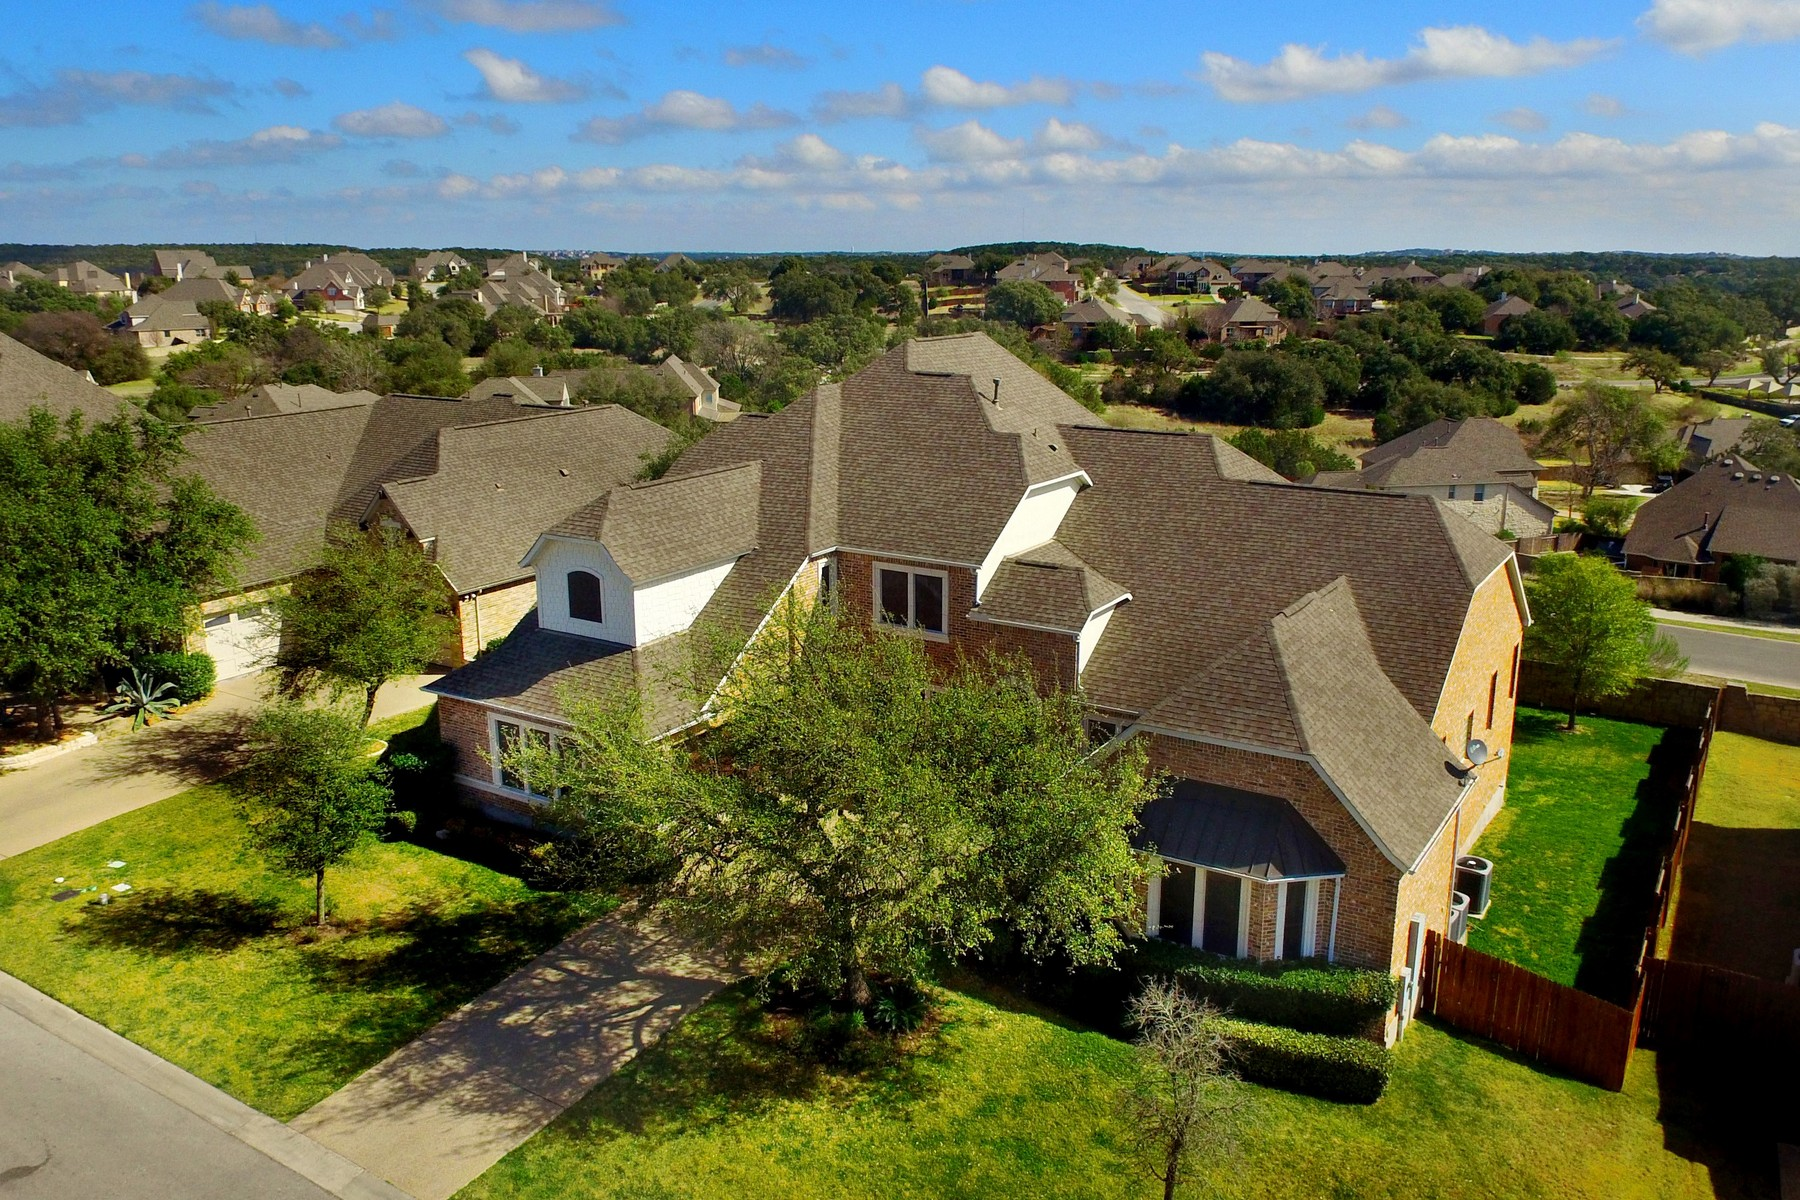 Single Family Home for Sale at Breathtaking Hill Country Views 292 Blazing Star Dripping Springs, Texas 78737 United States